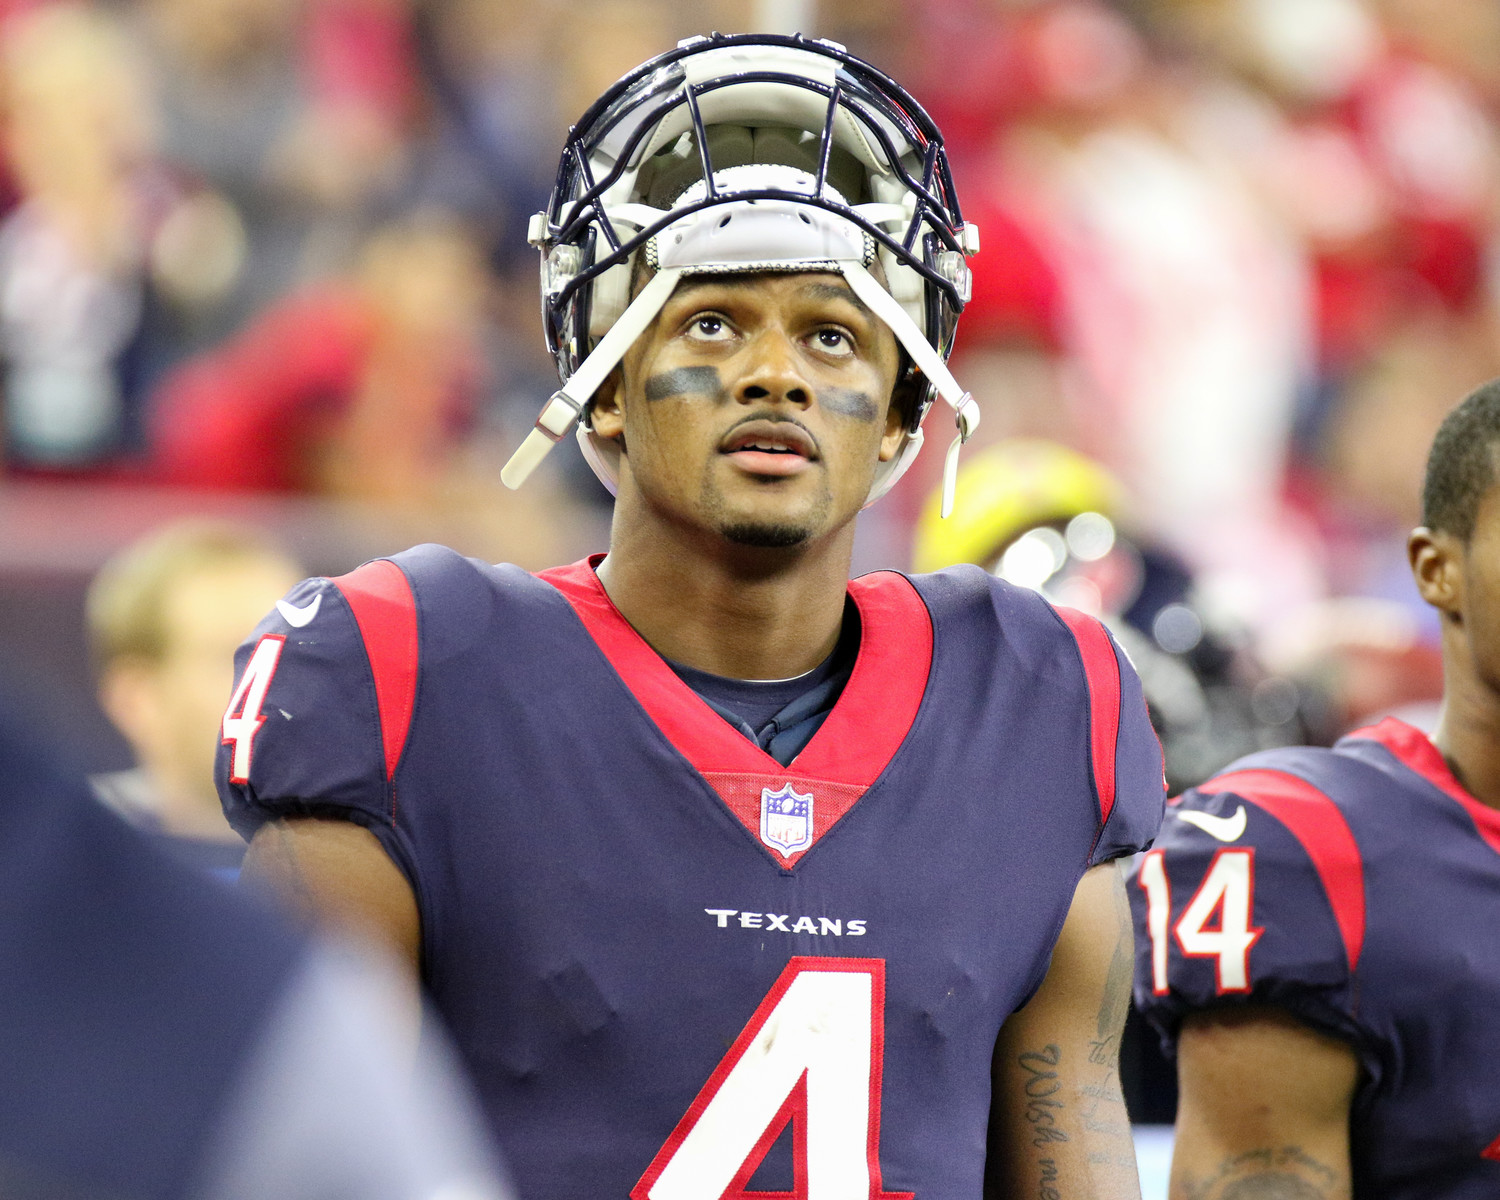 Houston Texans quarterback Deshaun Watson (4) looks up at the video board during the fourth quarter of an NFL game between the Houston Texans and the Kansas City Chiefs at NRG Stadium in Houston, Texas. The Chiefs won 42-34.